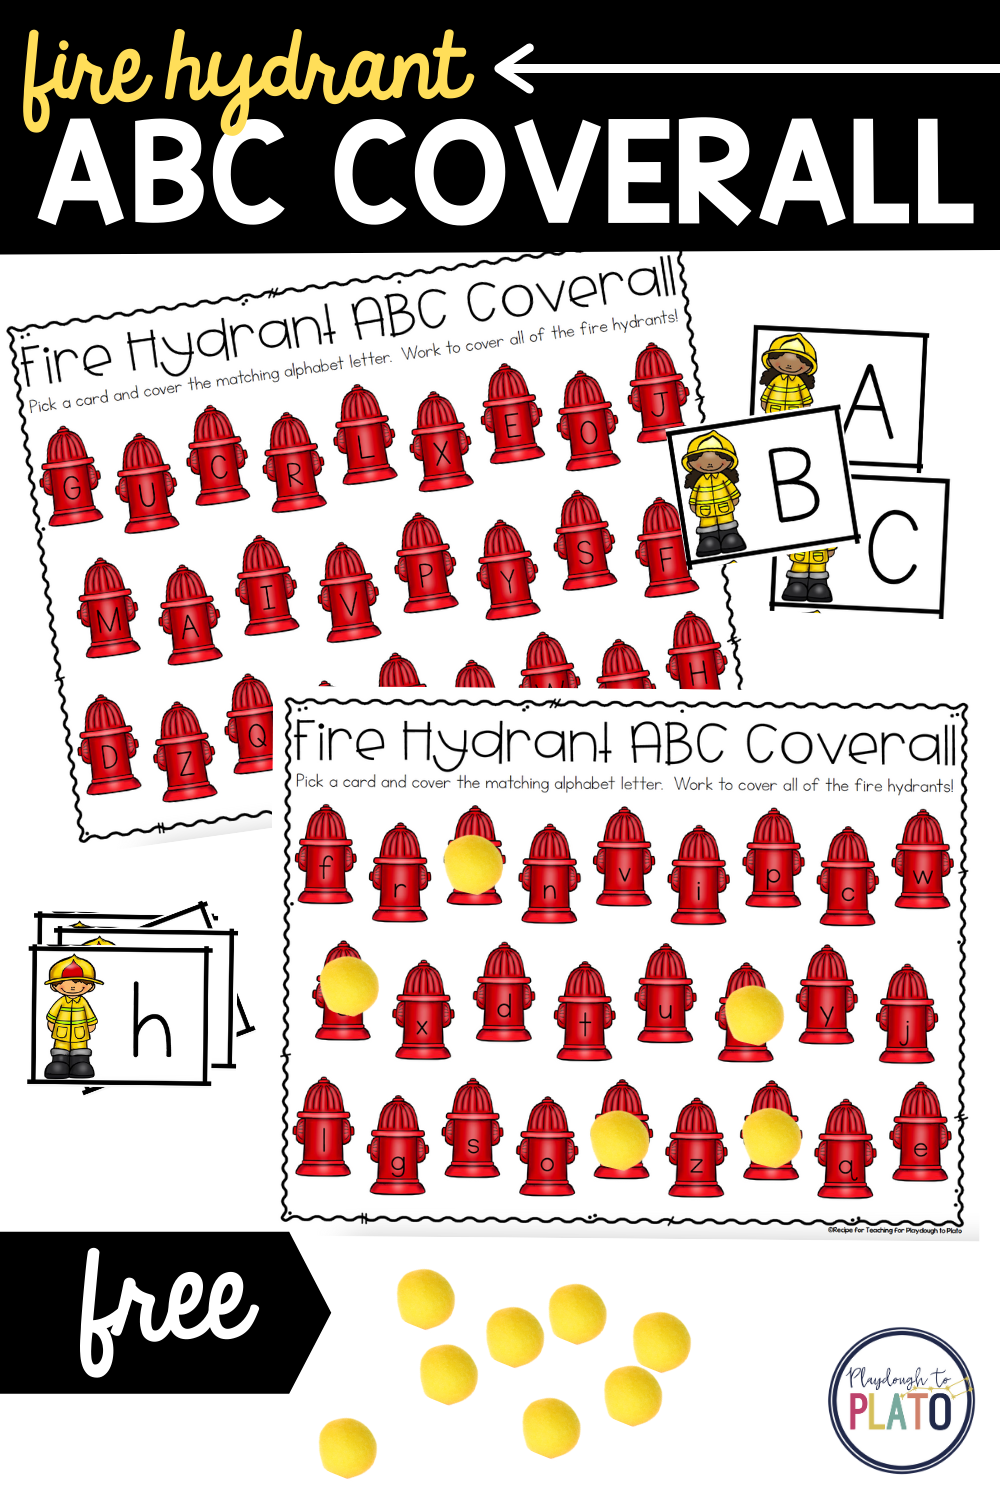 Fire Hydrant ABC Coverall Game